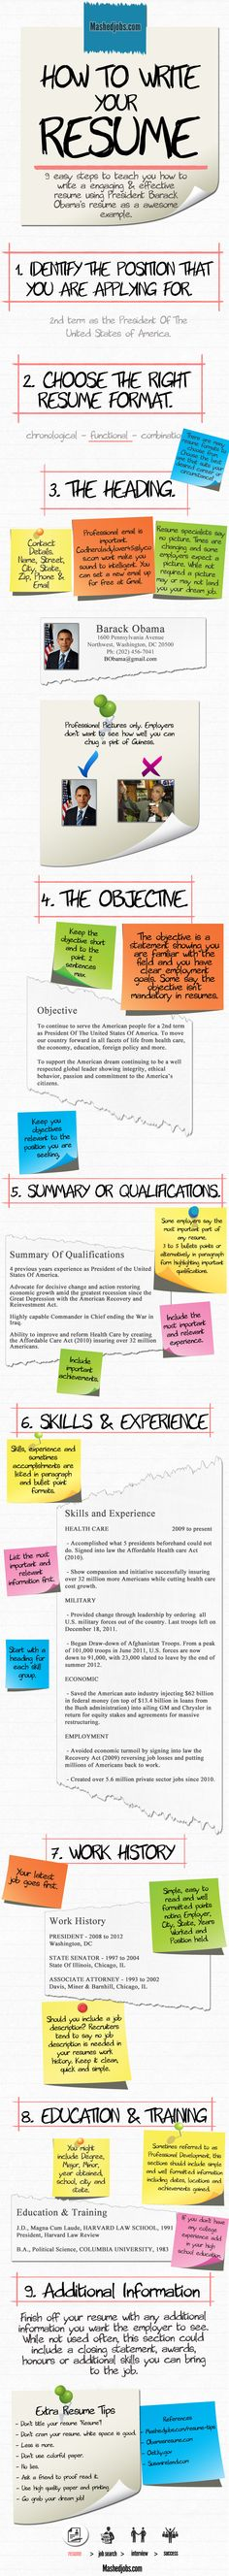 How to Write Your #Resume #careers